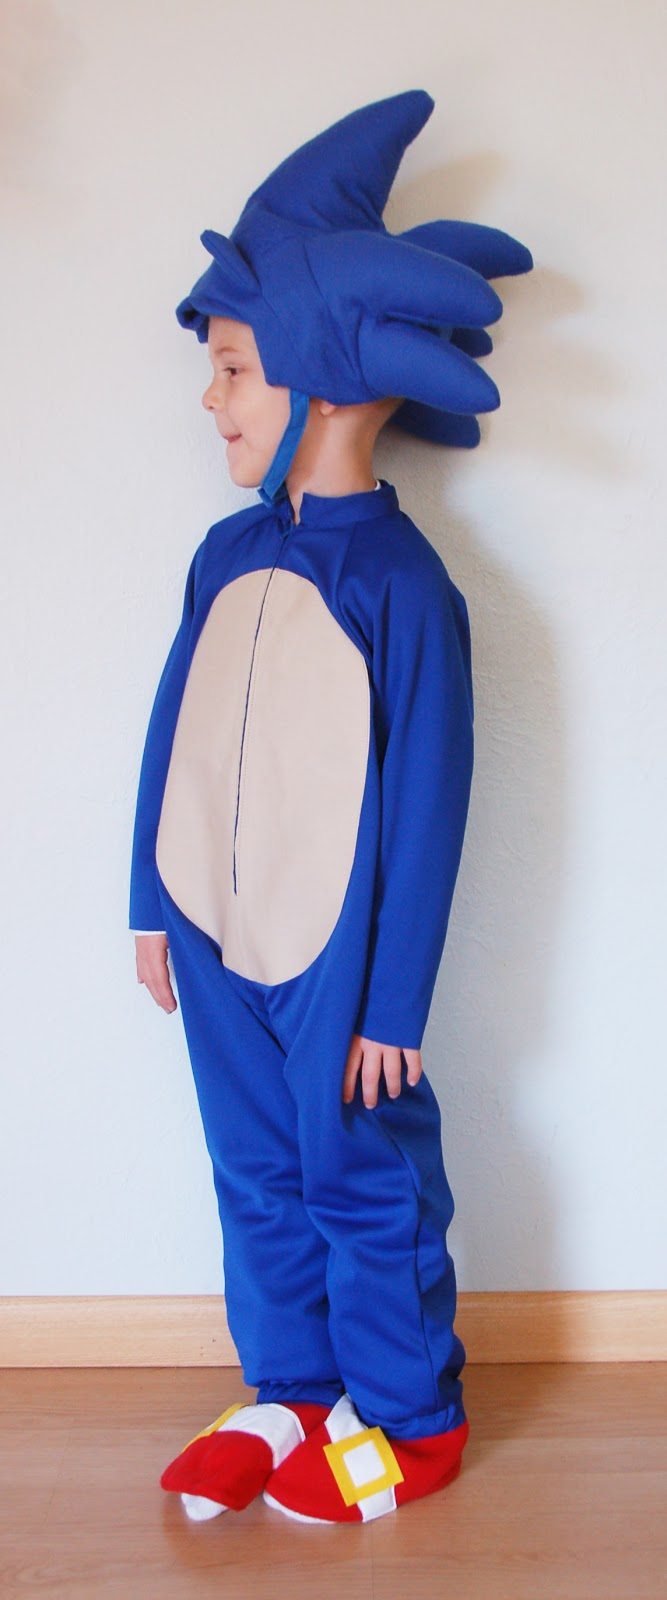 & The Almost Perfectionist: Sonic the Hedgehog Halloween Costume